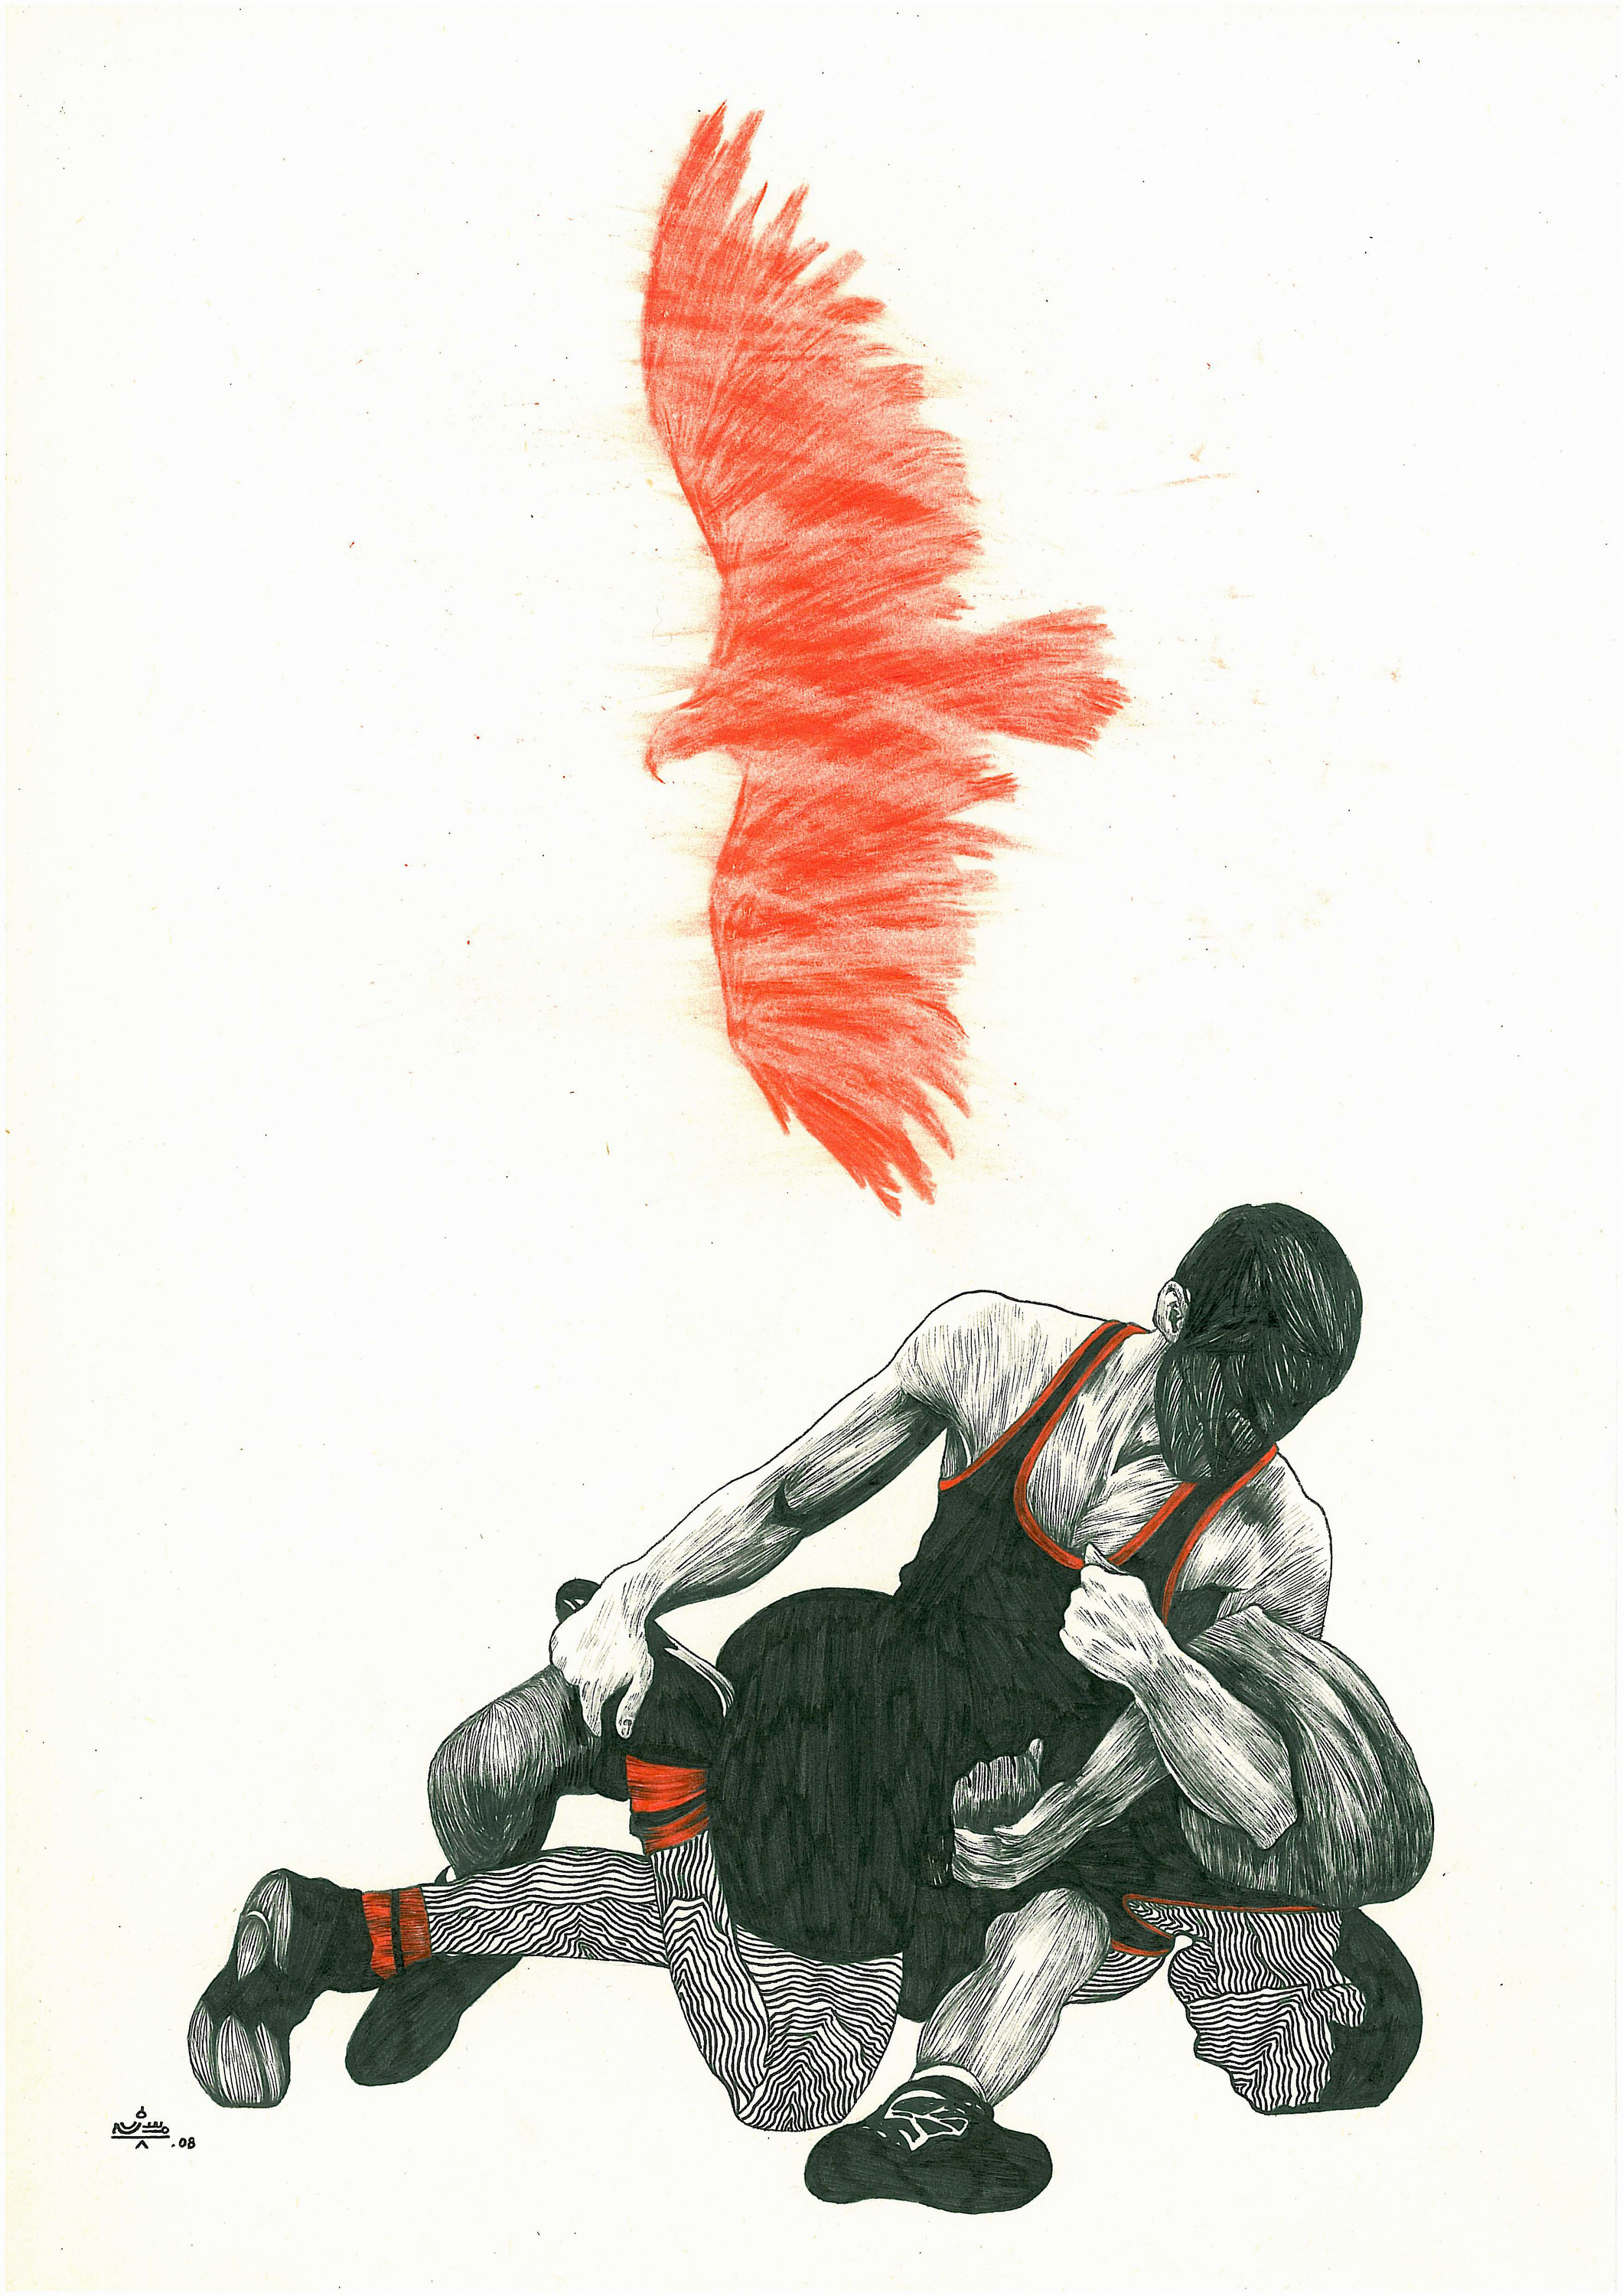 Mohsen Ahmadvand, Wrestlers, 2008, mixed media, courtesy of artist, Thomas Erben and XVA galleries